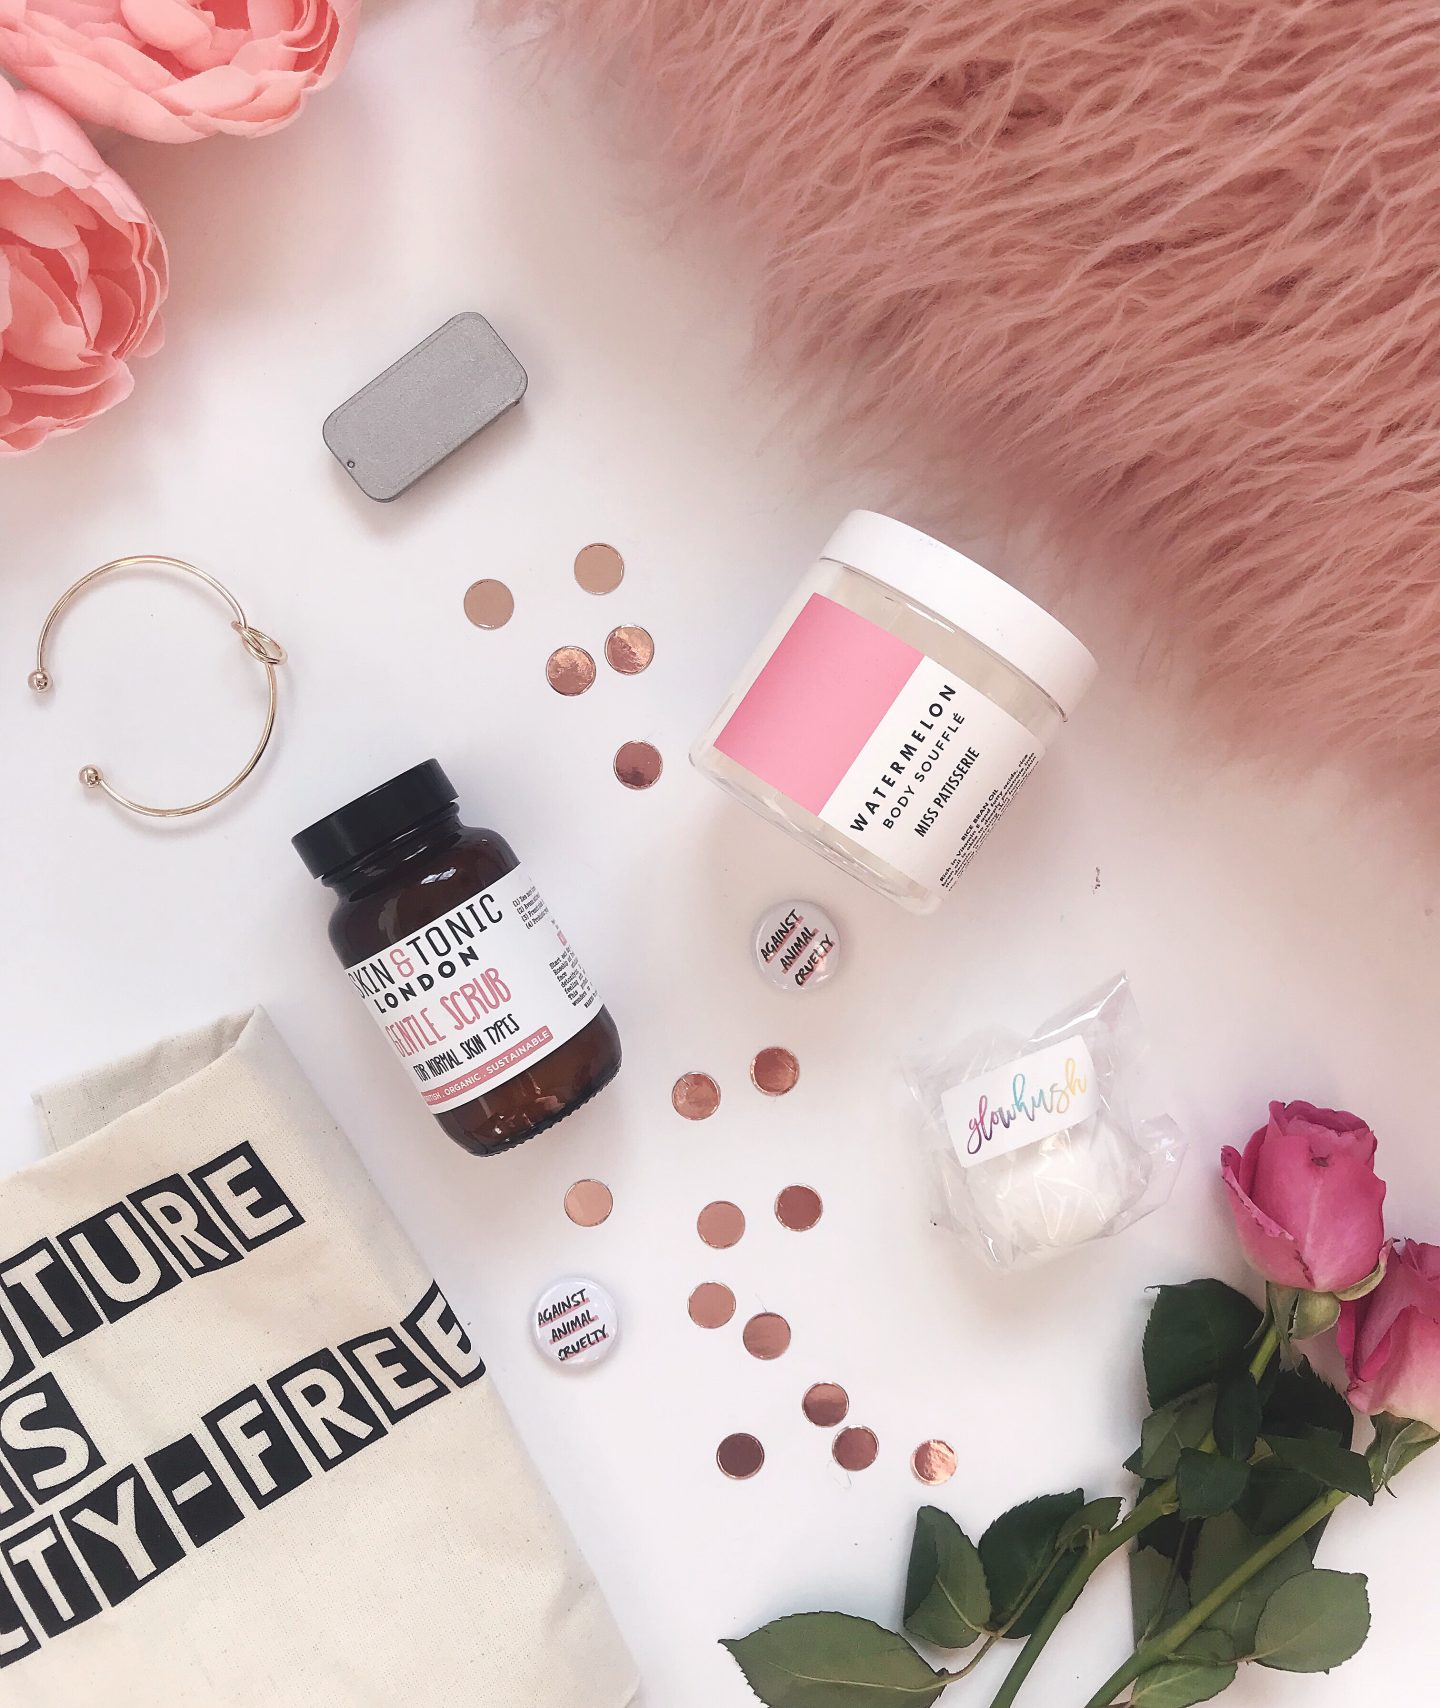 Exploring Cruelty Free Subscription Boxes with Wildling Box Co